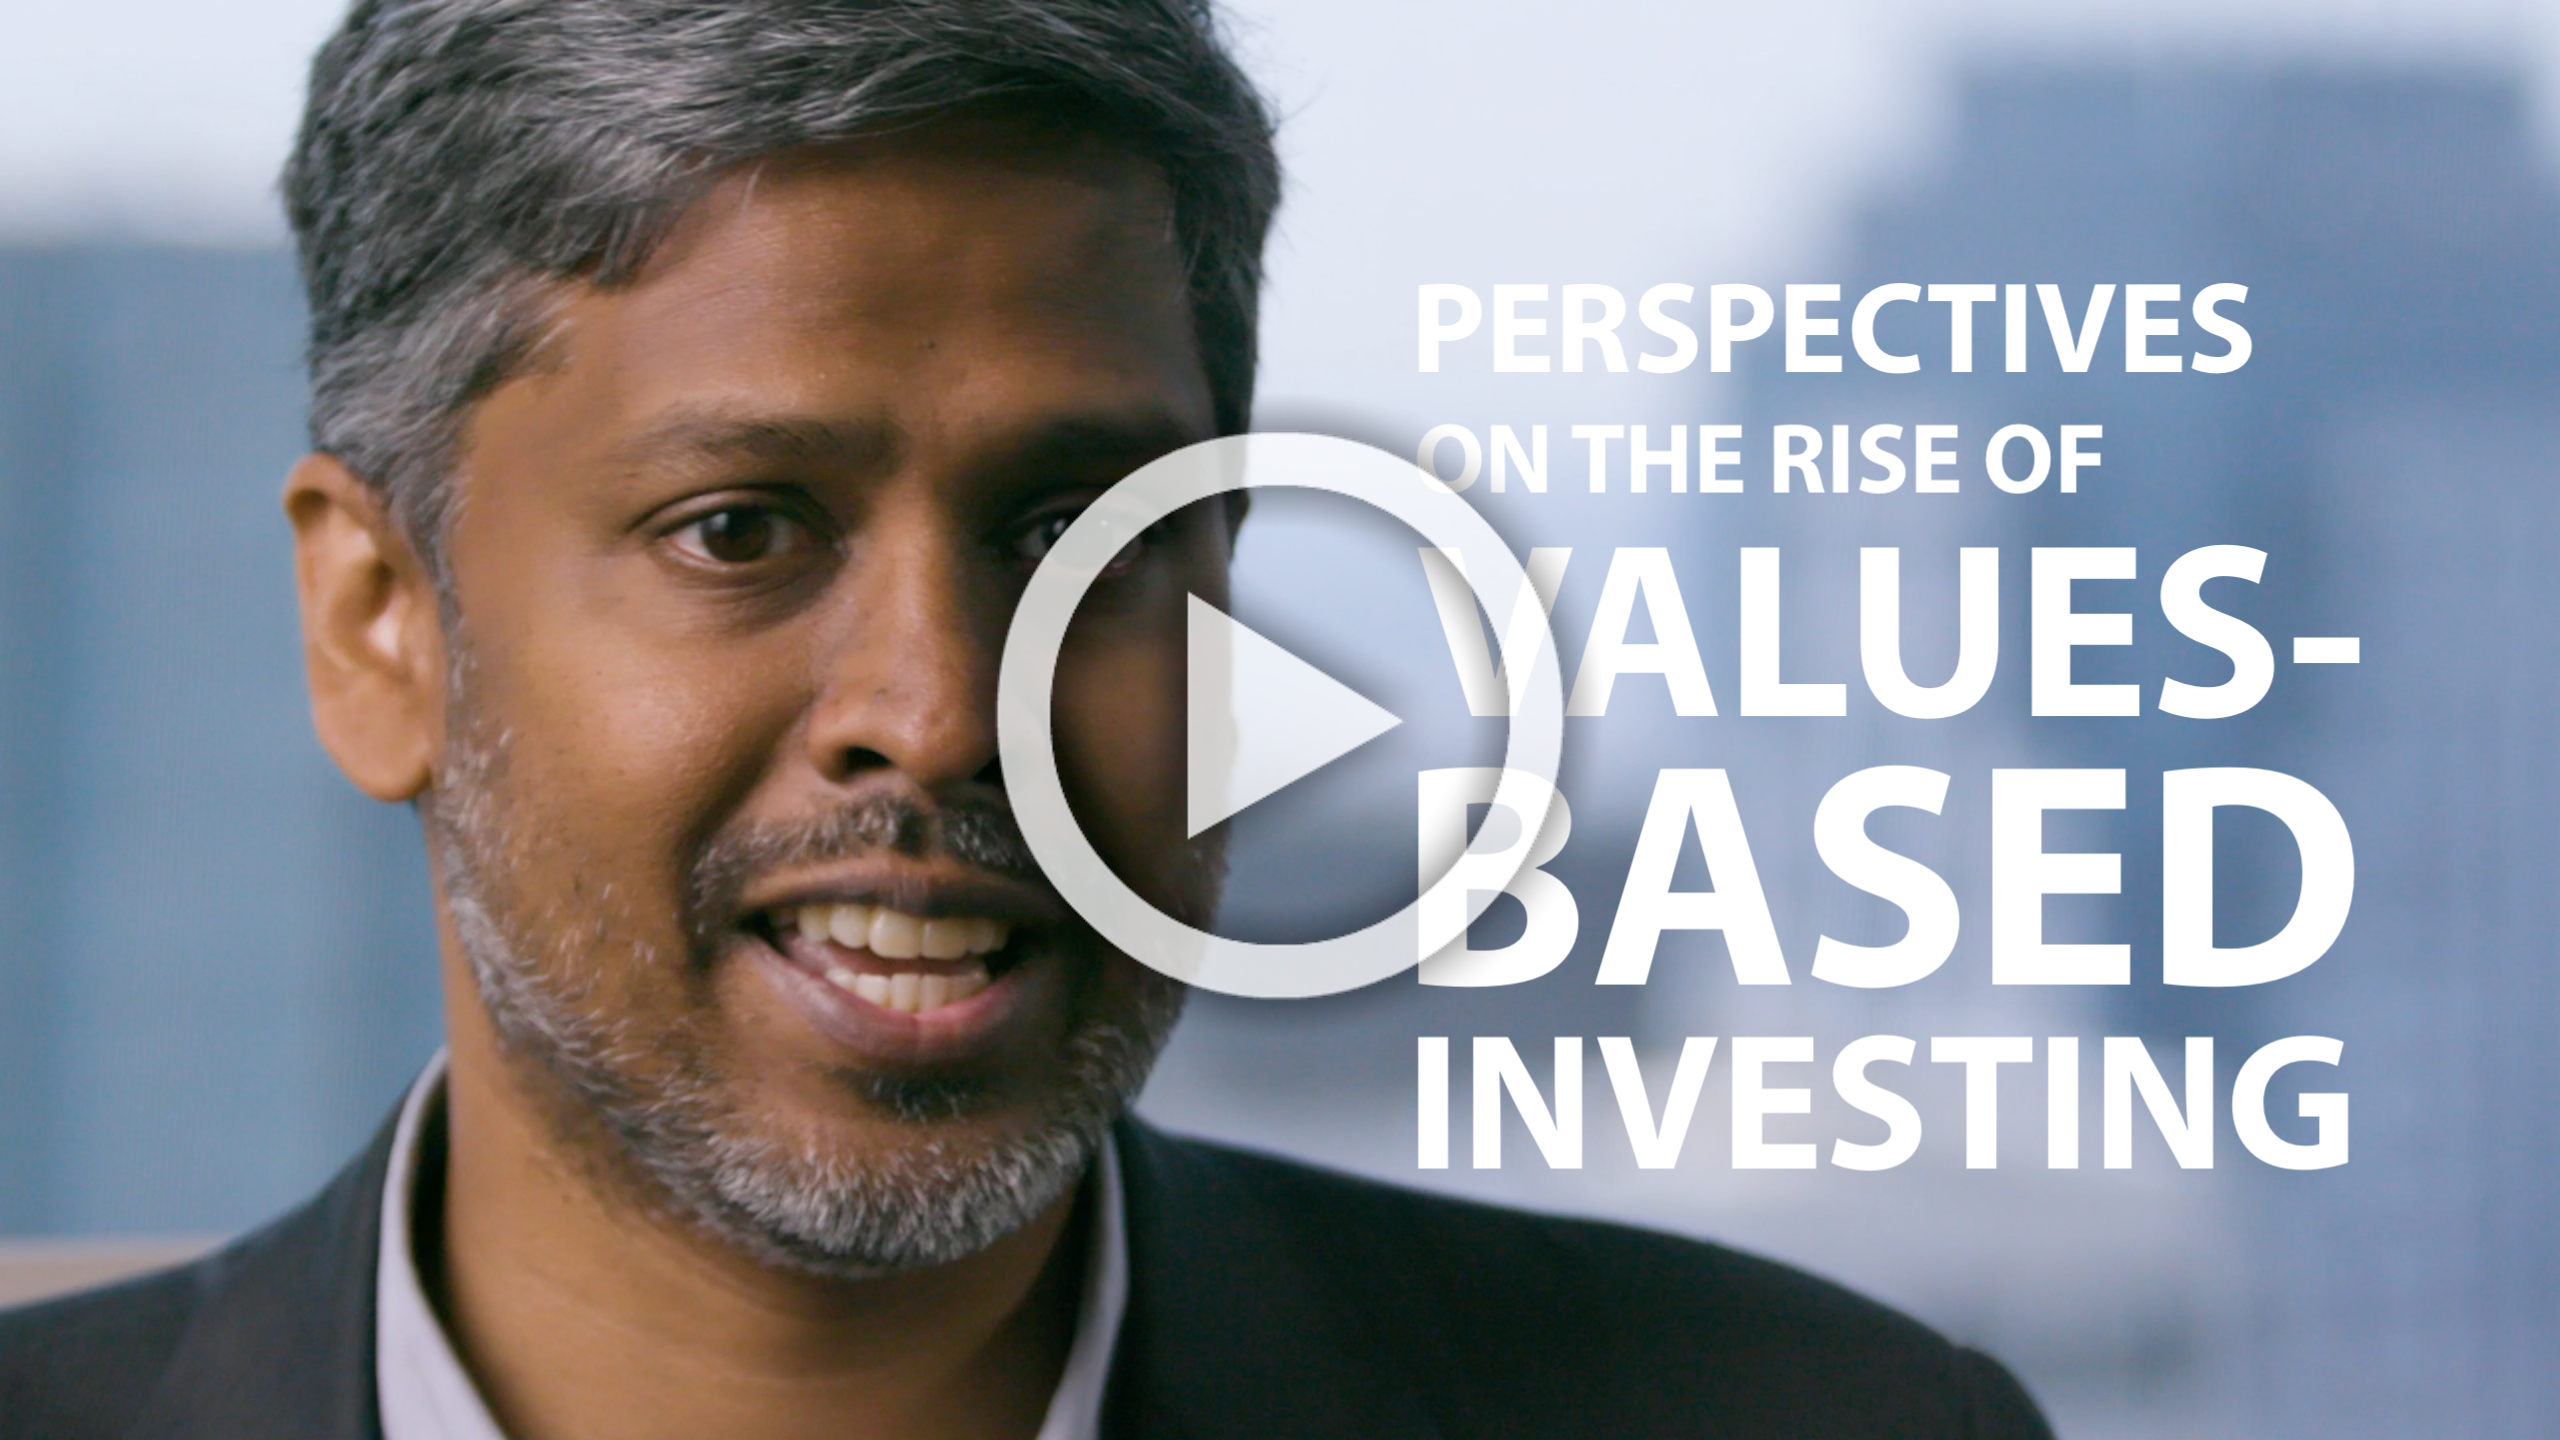 Perspectives on the rise of values-based investing